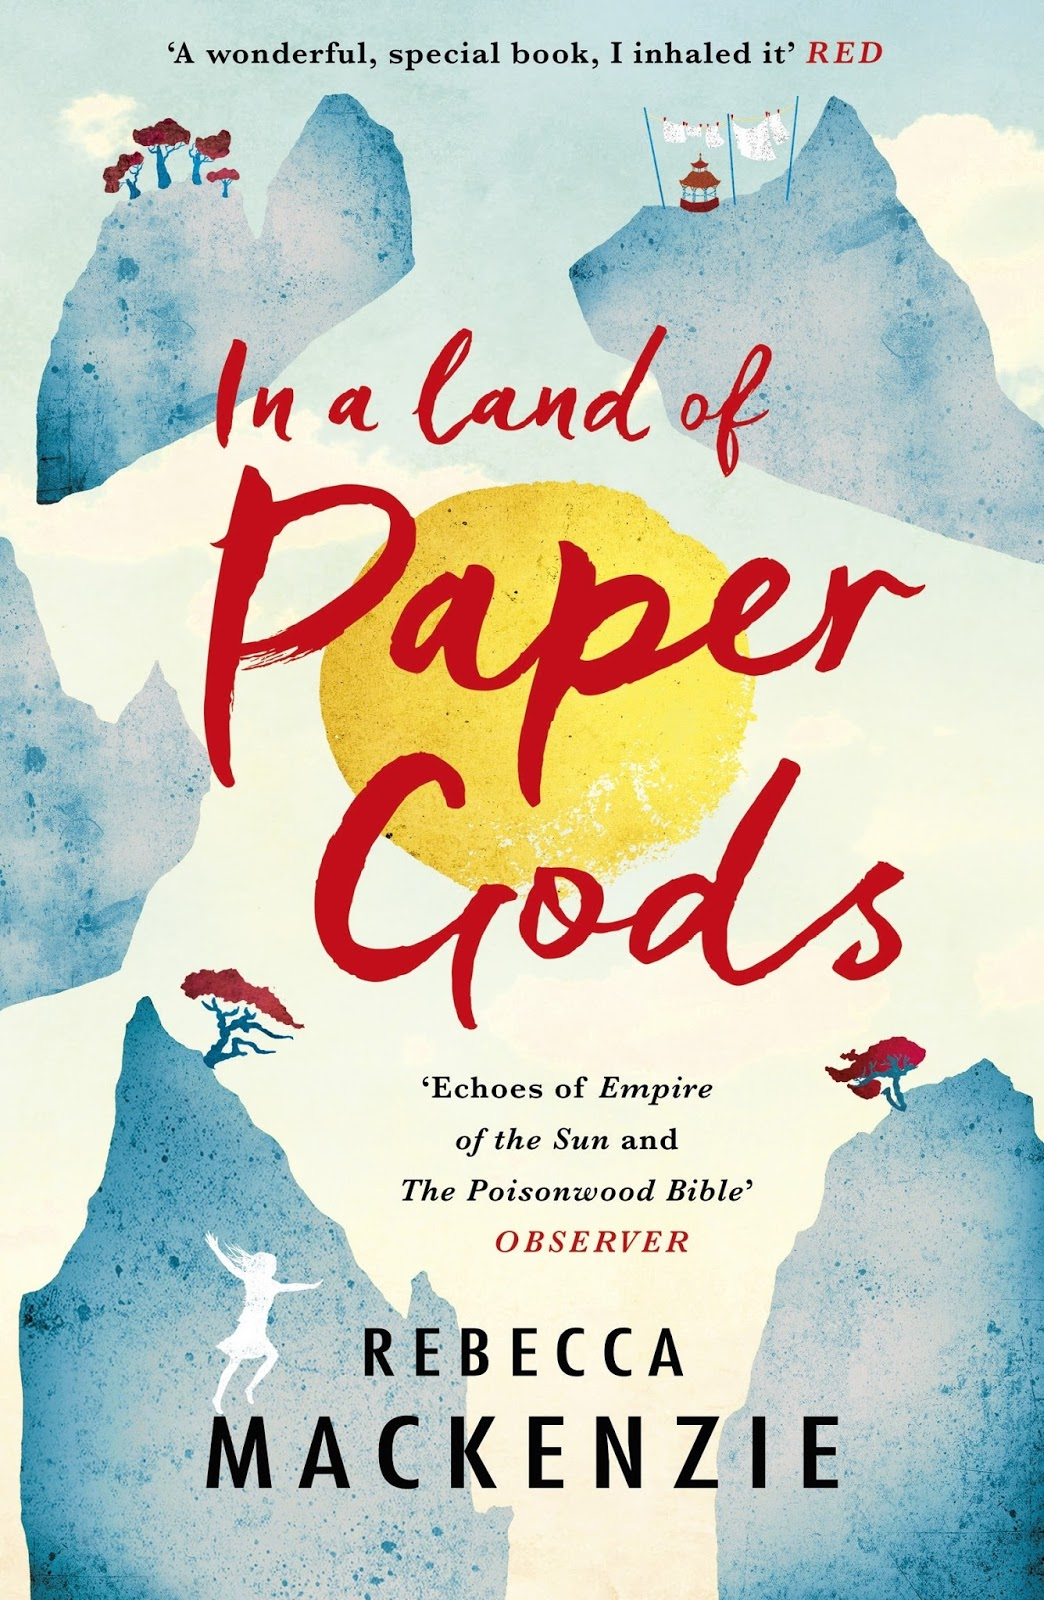 In a Land of Paper Gods by Rebecca Mackenzie